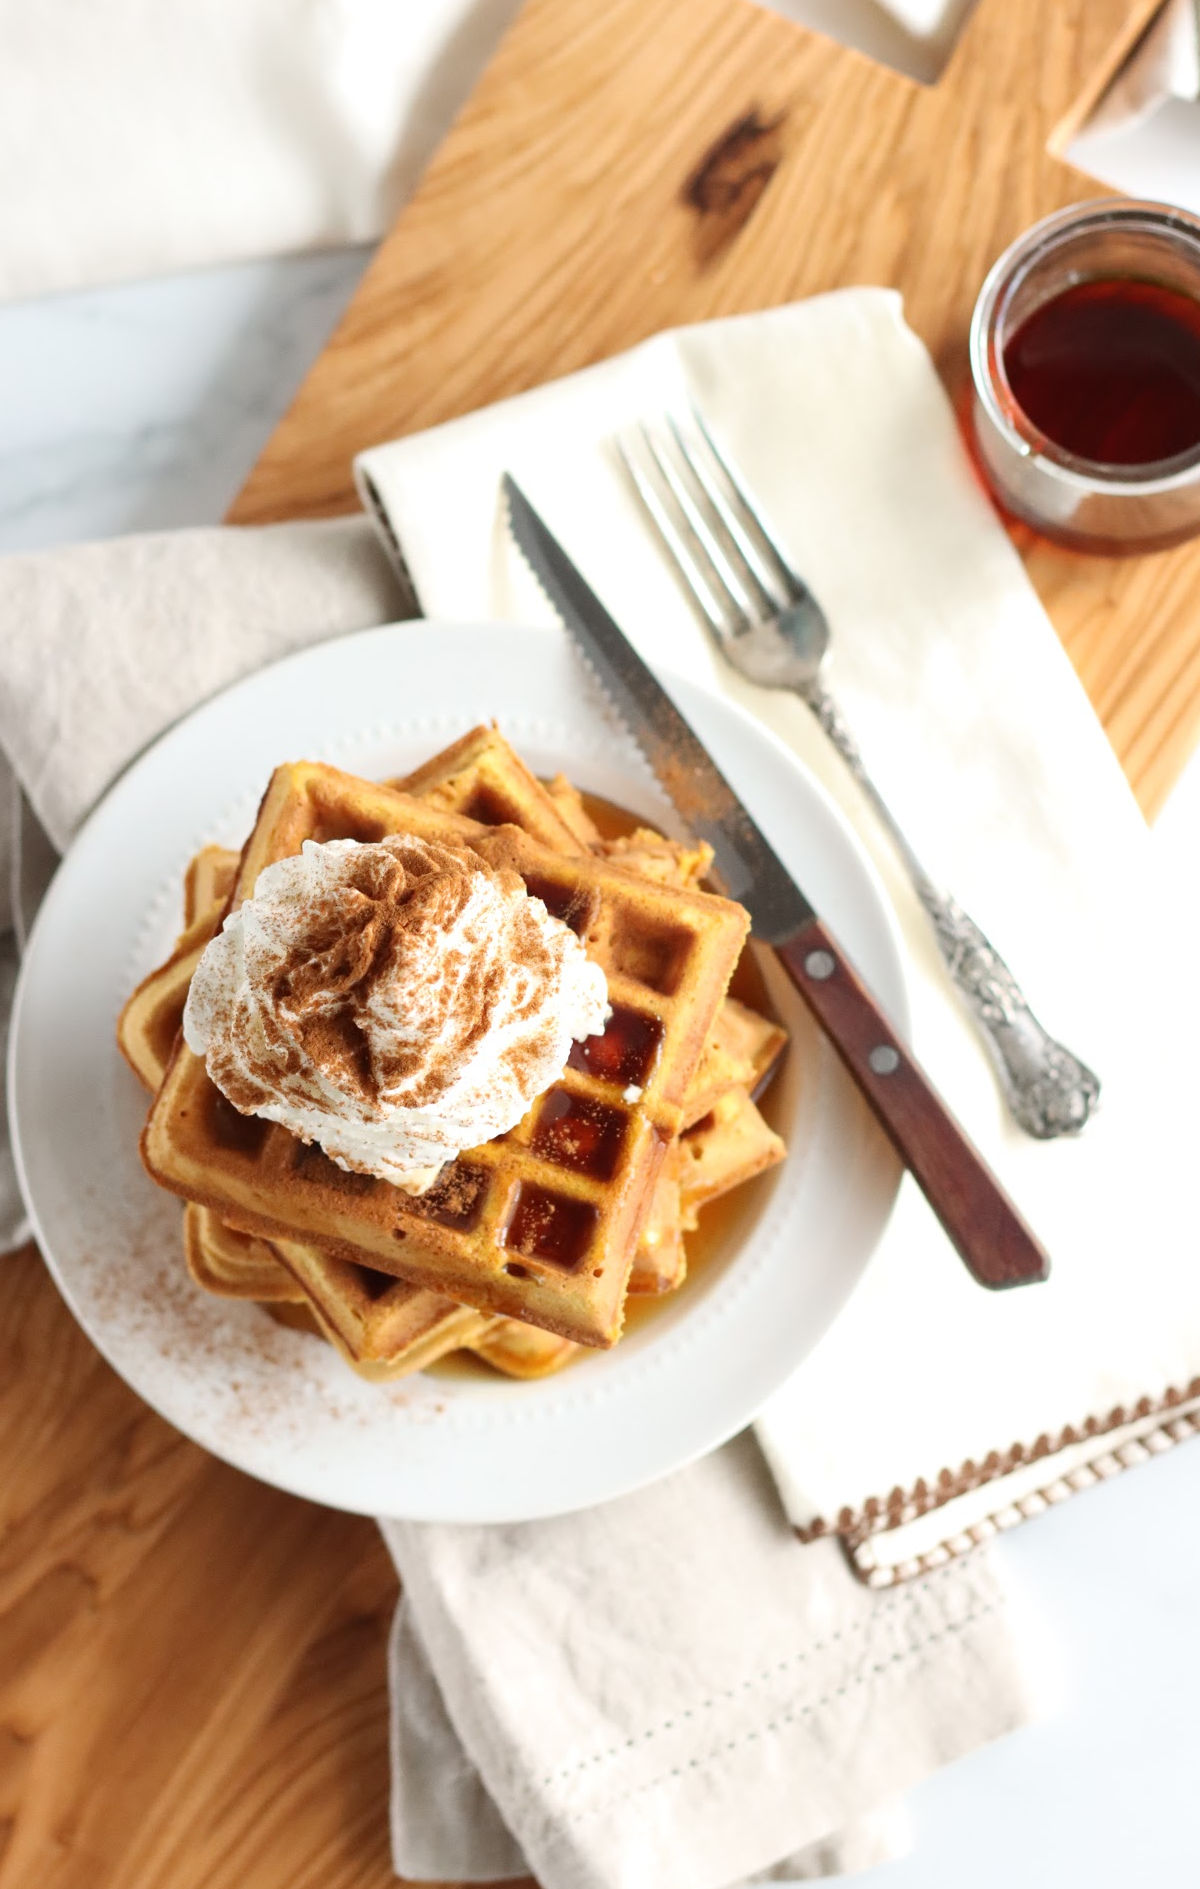 Square pumpkin waffles stacked on each other, whipped cream, maple syrup, and sprinkled with cinnamon.